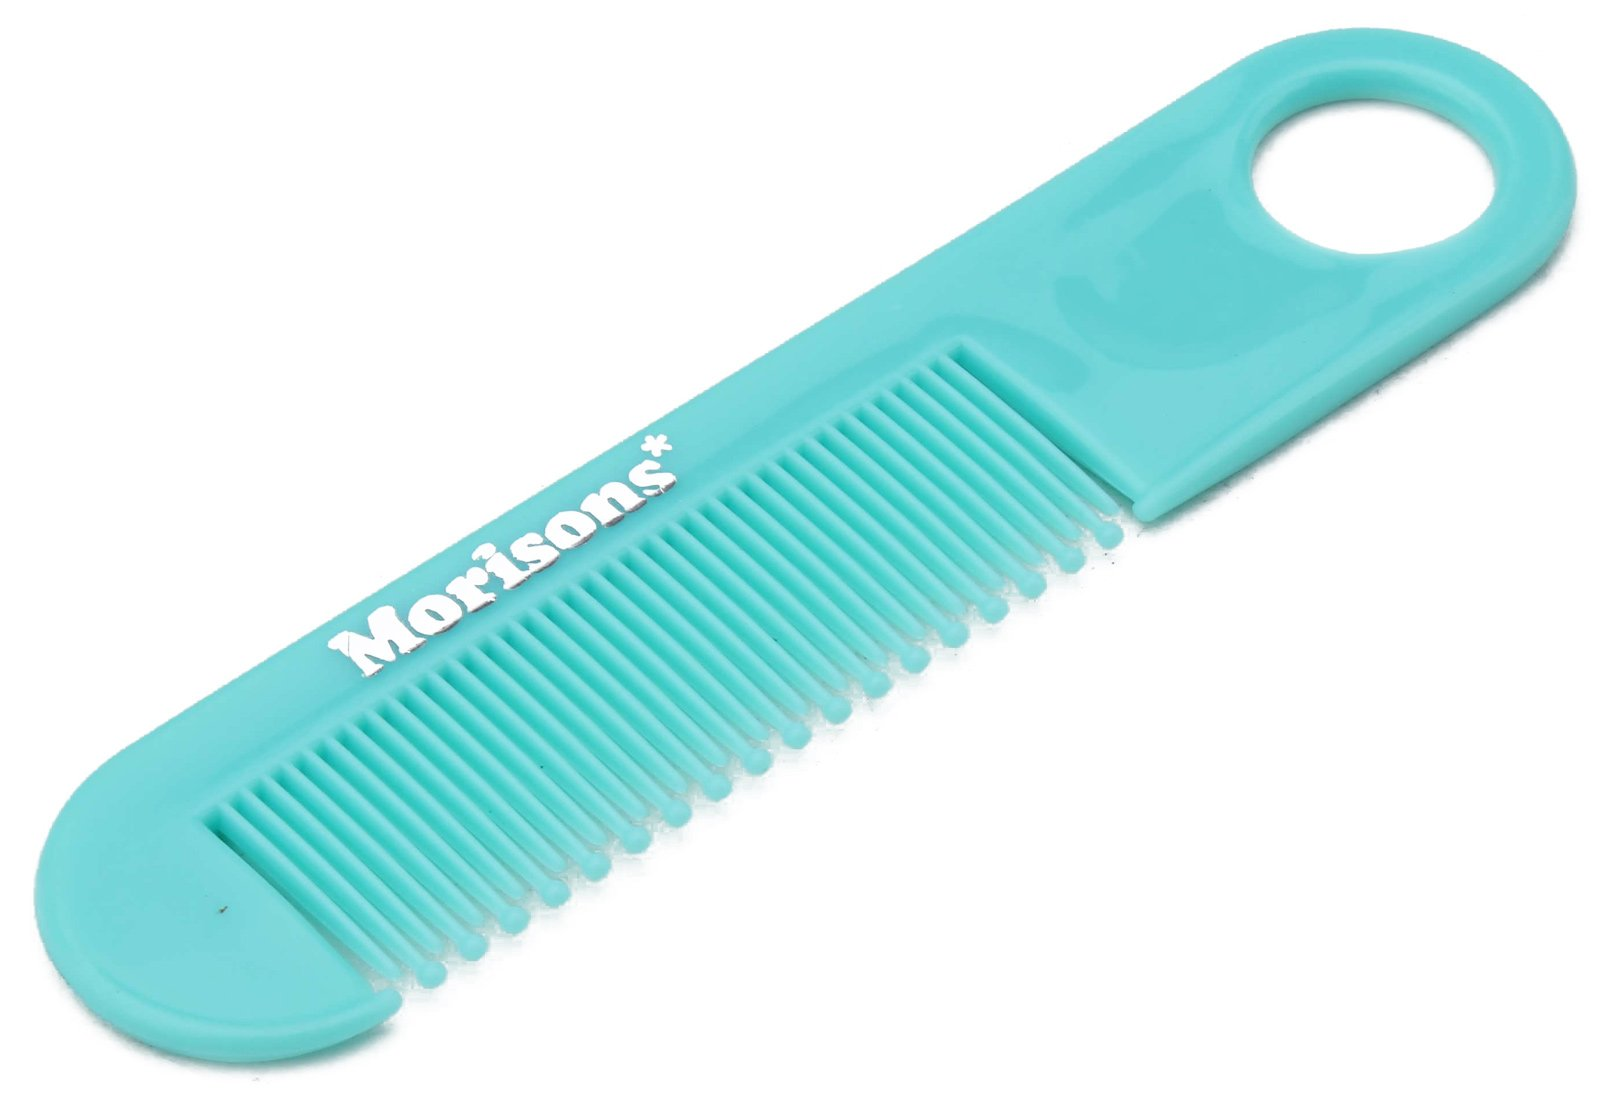 Brush Comb Online Buy Grooming For Baby Kids At Pigeon Ampamp Set Morisons Dreams Green